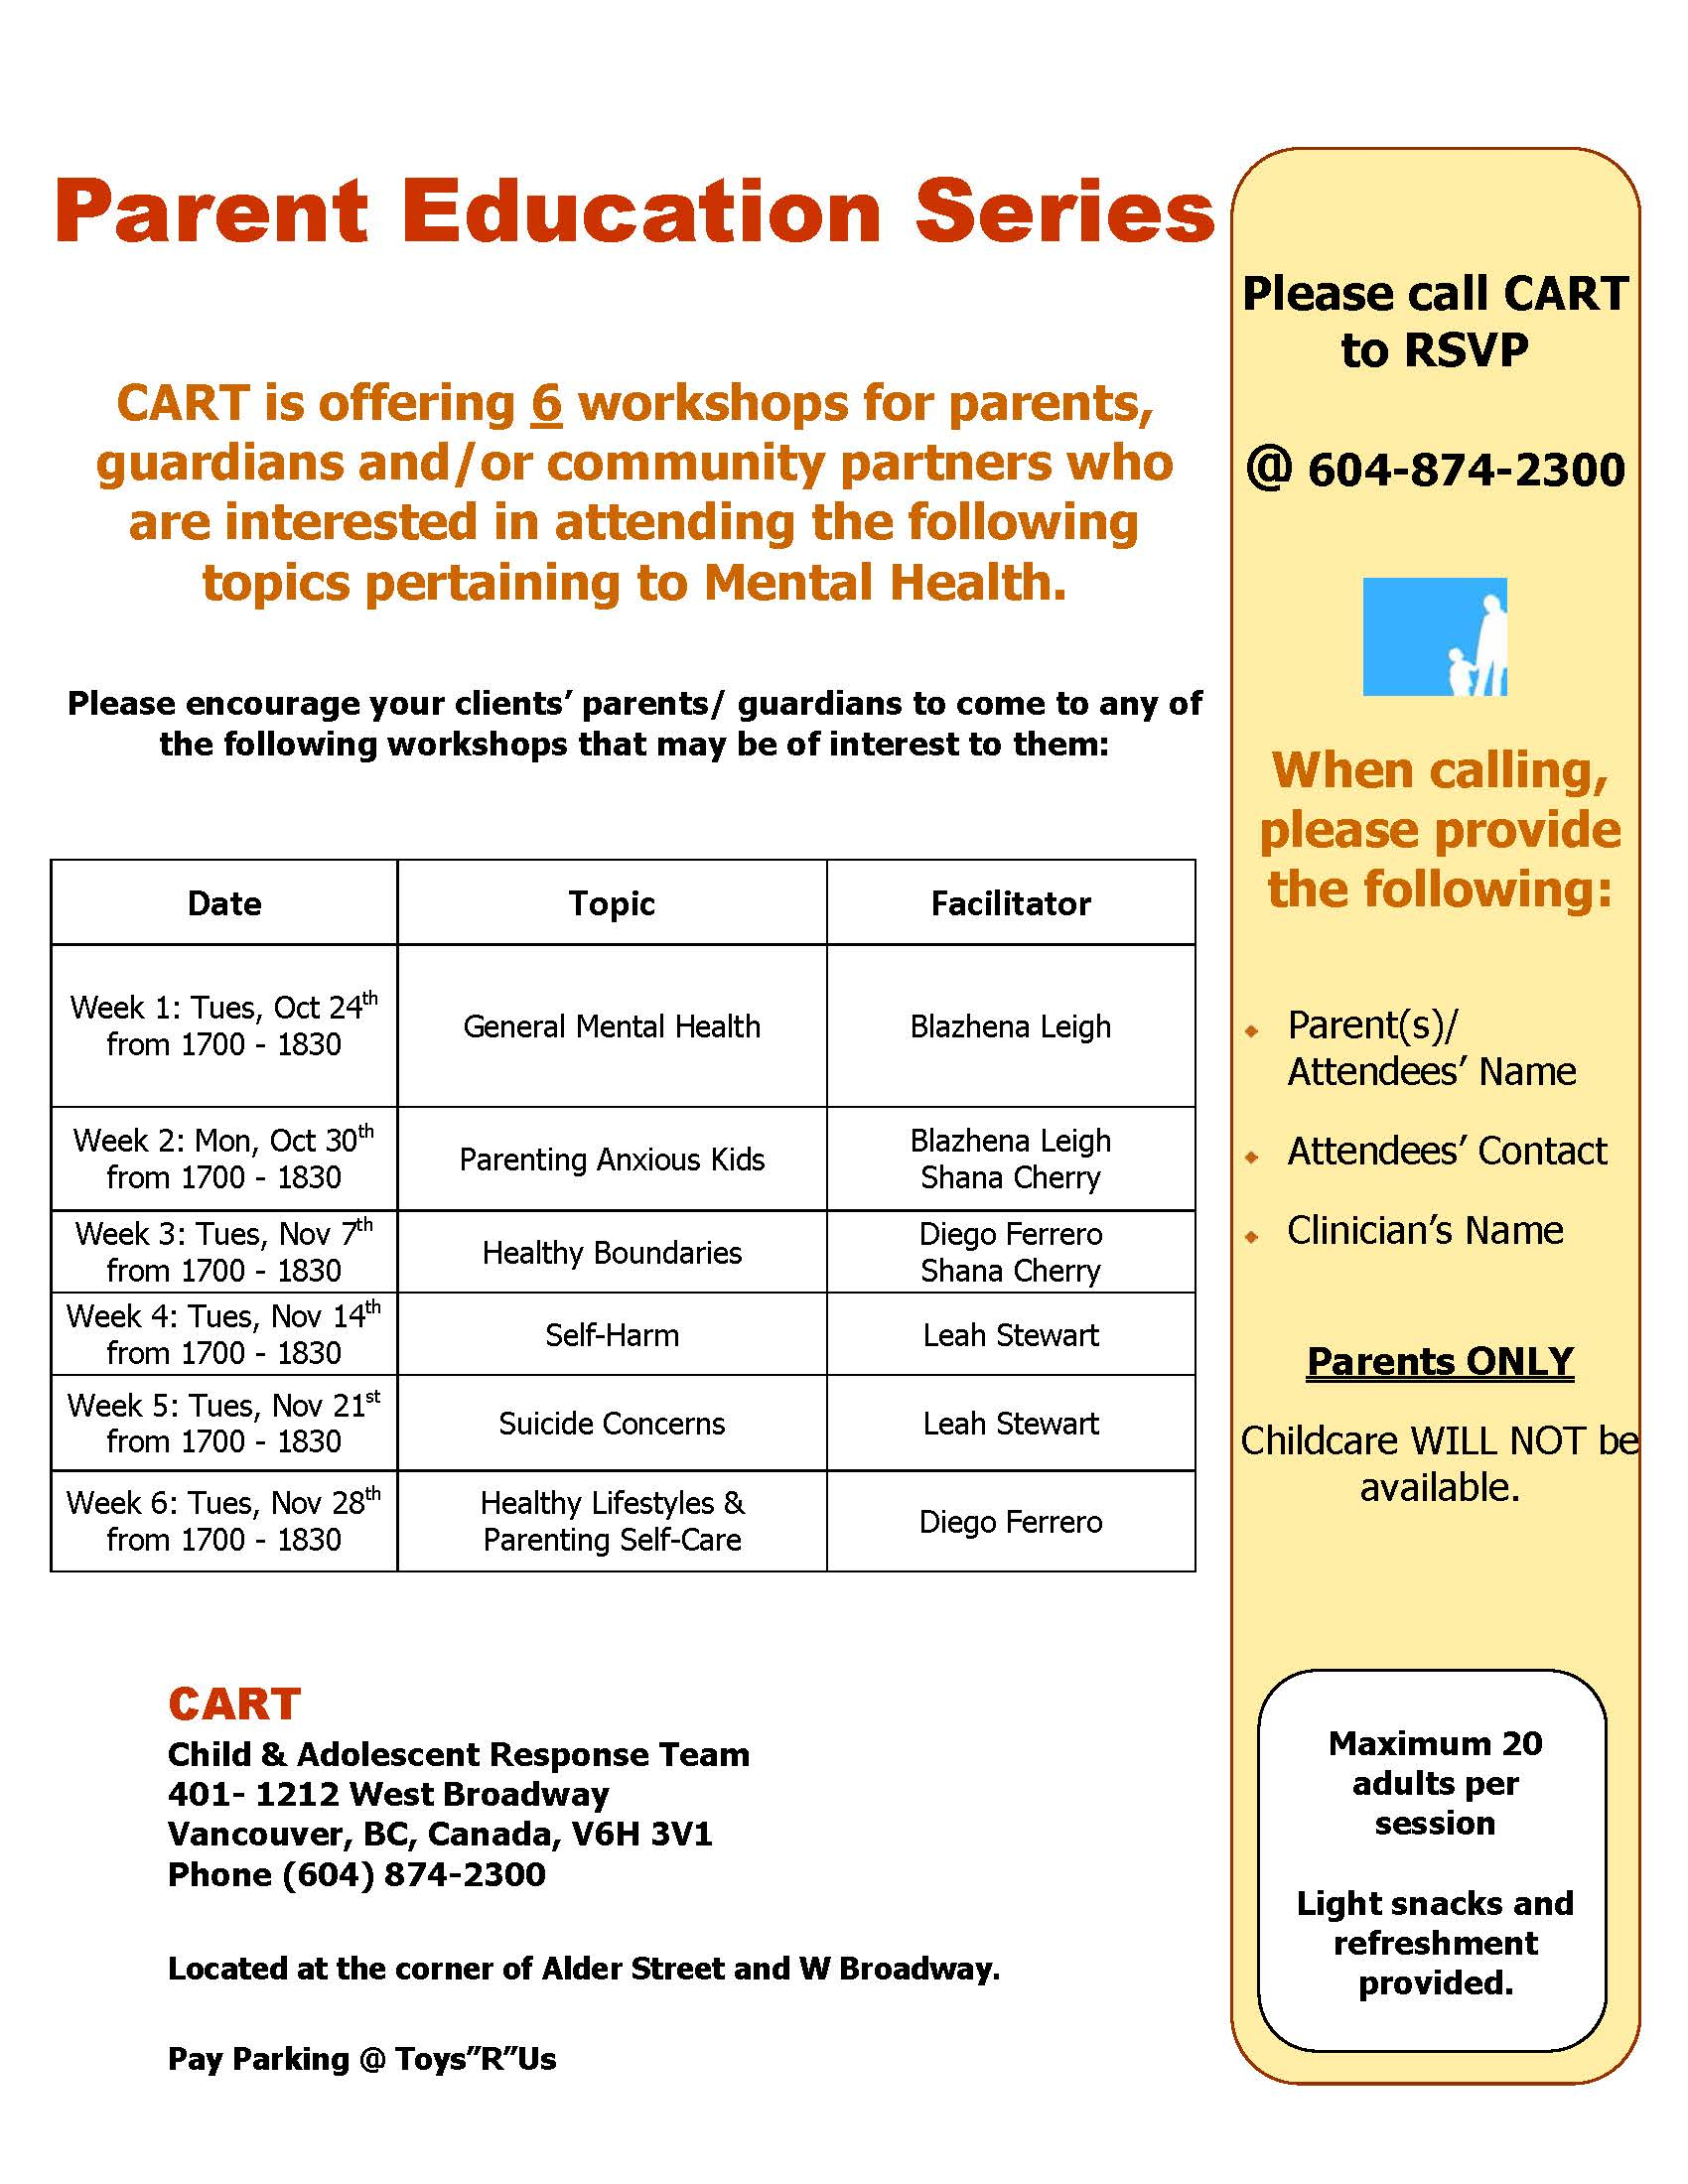 Parent Education Series at CART - Fall Session.jpg